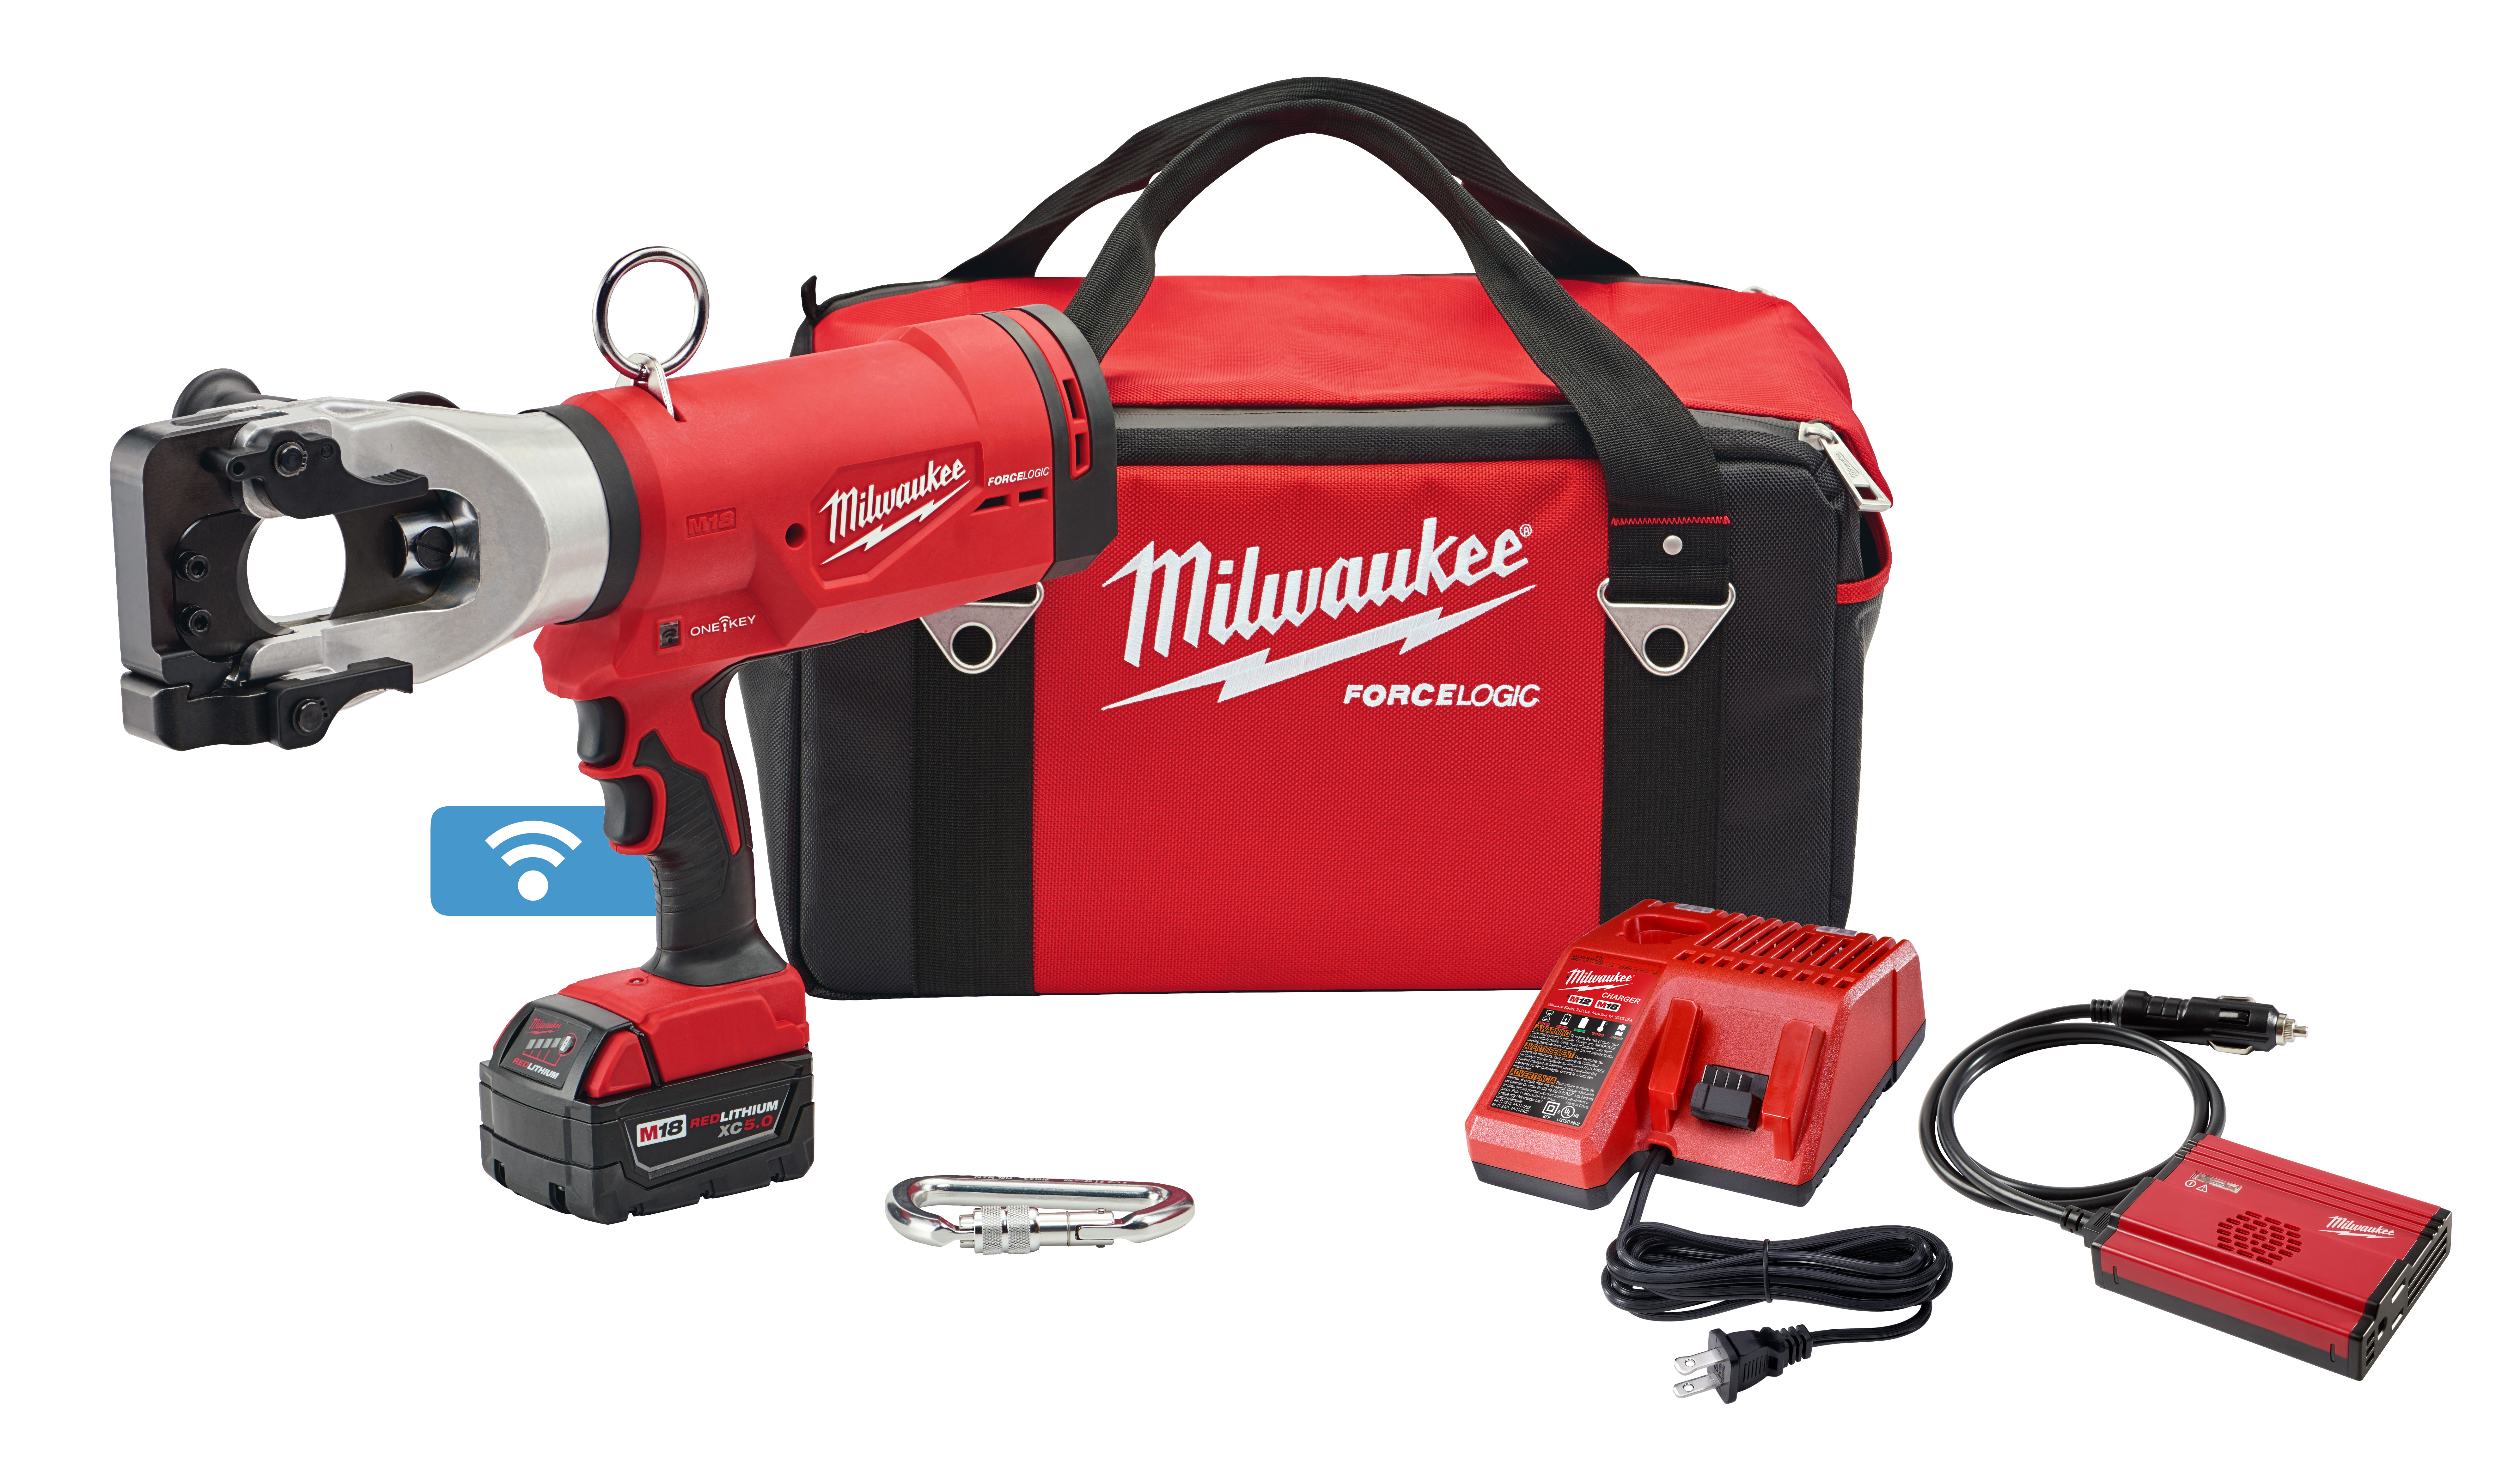 Milwaukee® M18™ 2777-21 FORCE LOGIC™ Cordless Cable Cutter Kit, Up to 1590 Falcon ACSR Cutting, 18 VDC, 5 Ah Lithium-Ion Battery